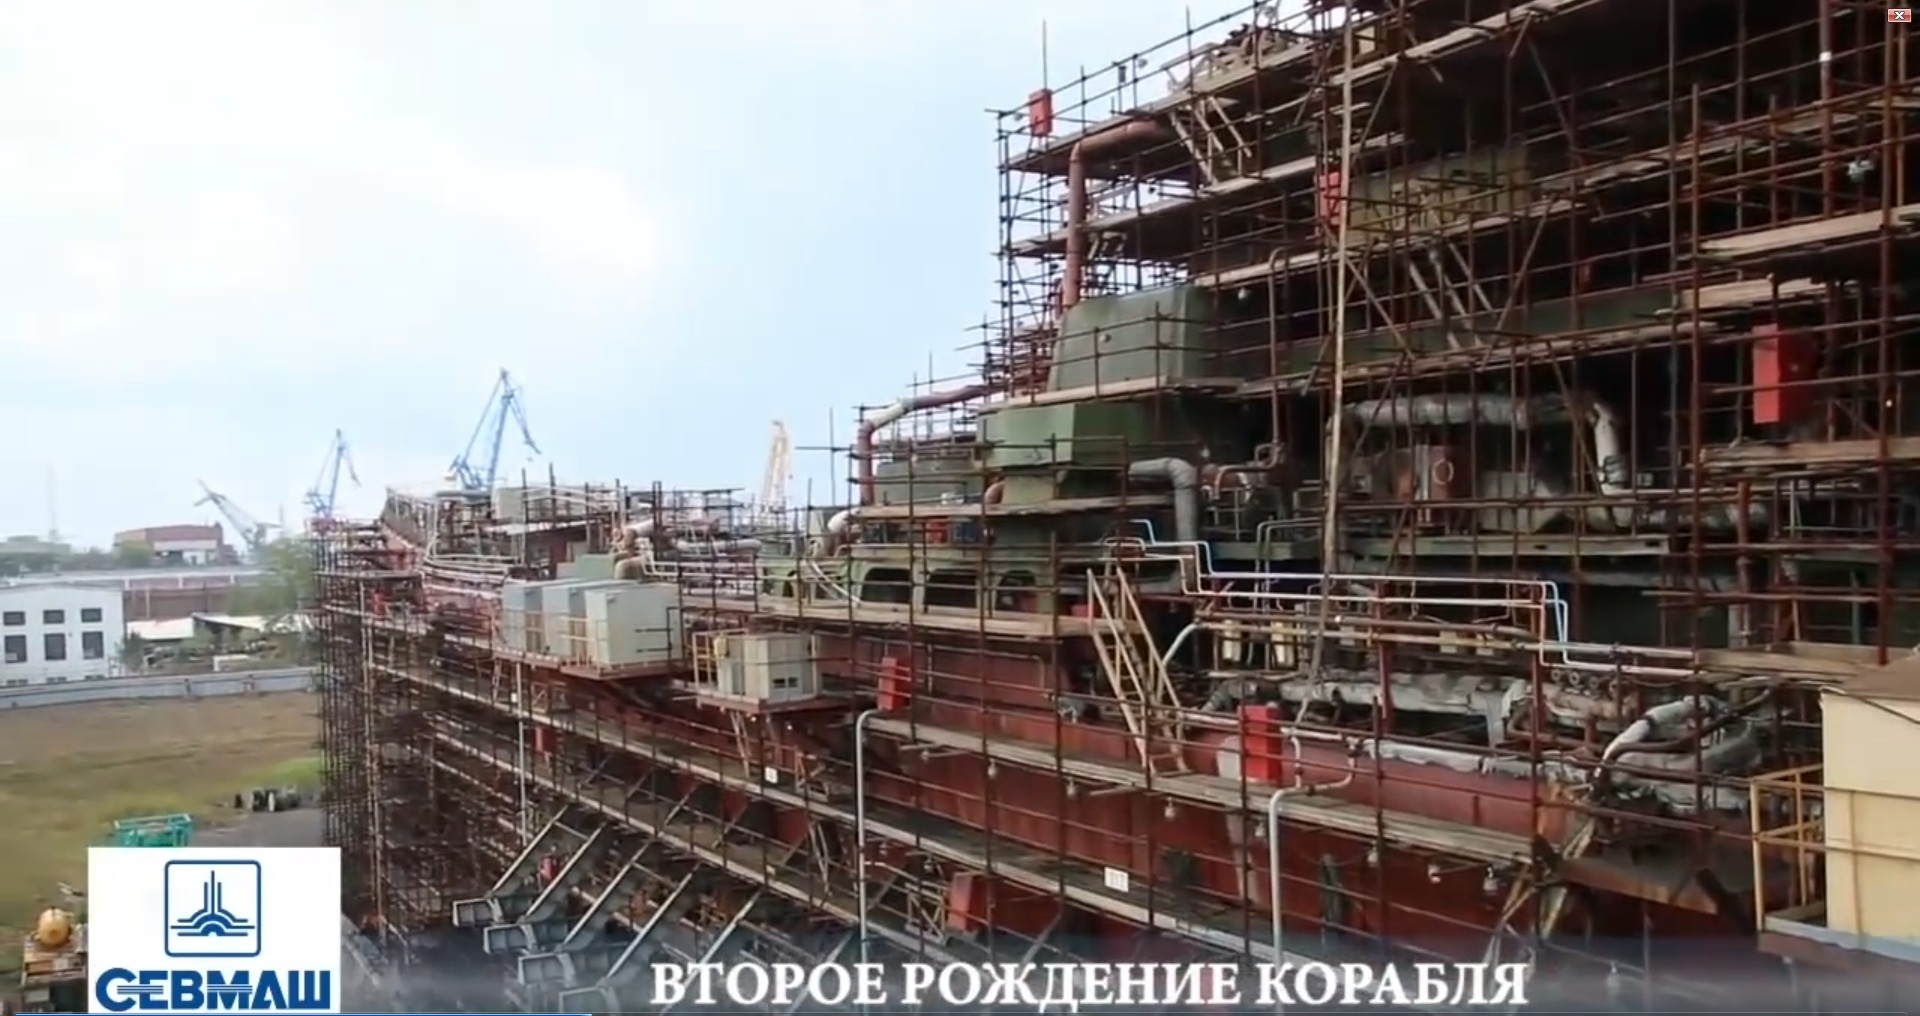 Upgraded Kirov class: Project 11442 [Admiral Nakhimov] - Page 13 1144